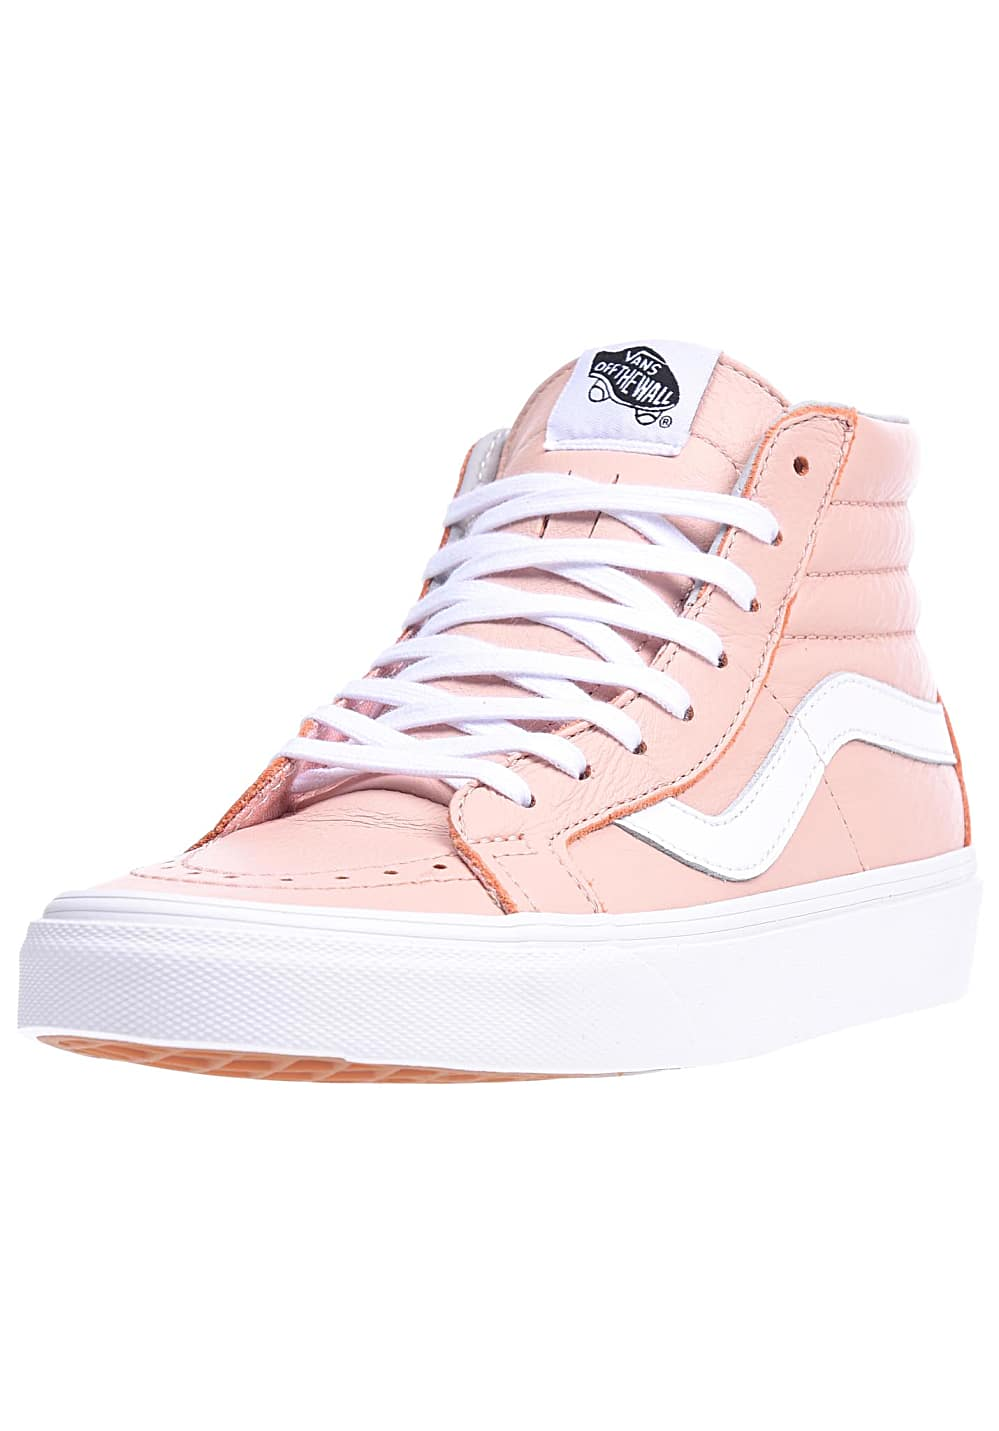 337370cbac Vans Sk8-Hi Reissue - Sneakers for Women - Pink - Planet Sports